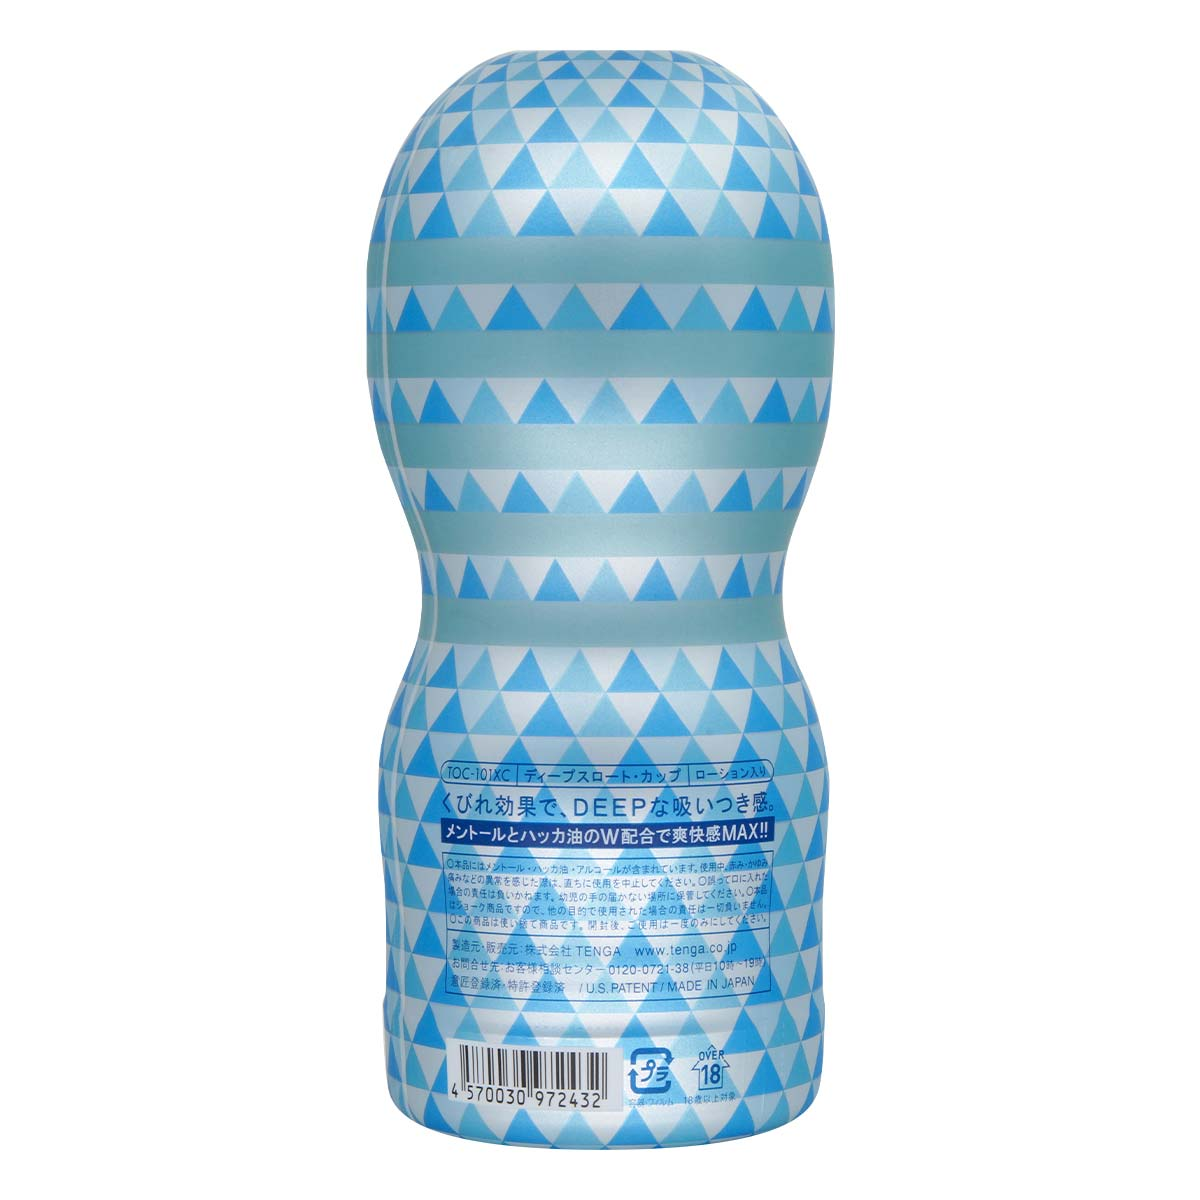 TENGA DEEP THROAT CUP EXTRA COOL EDITION